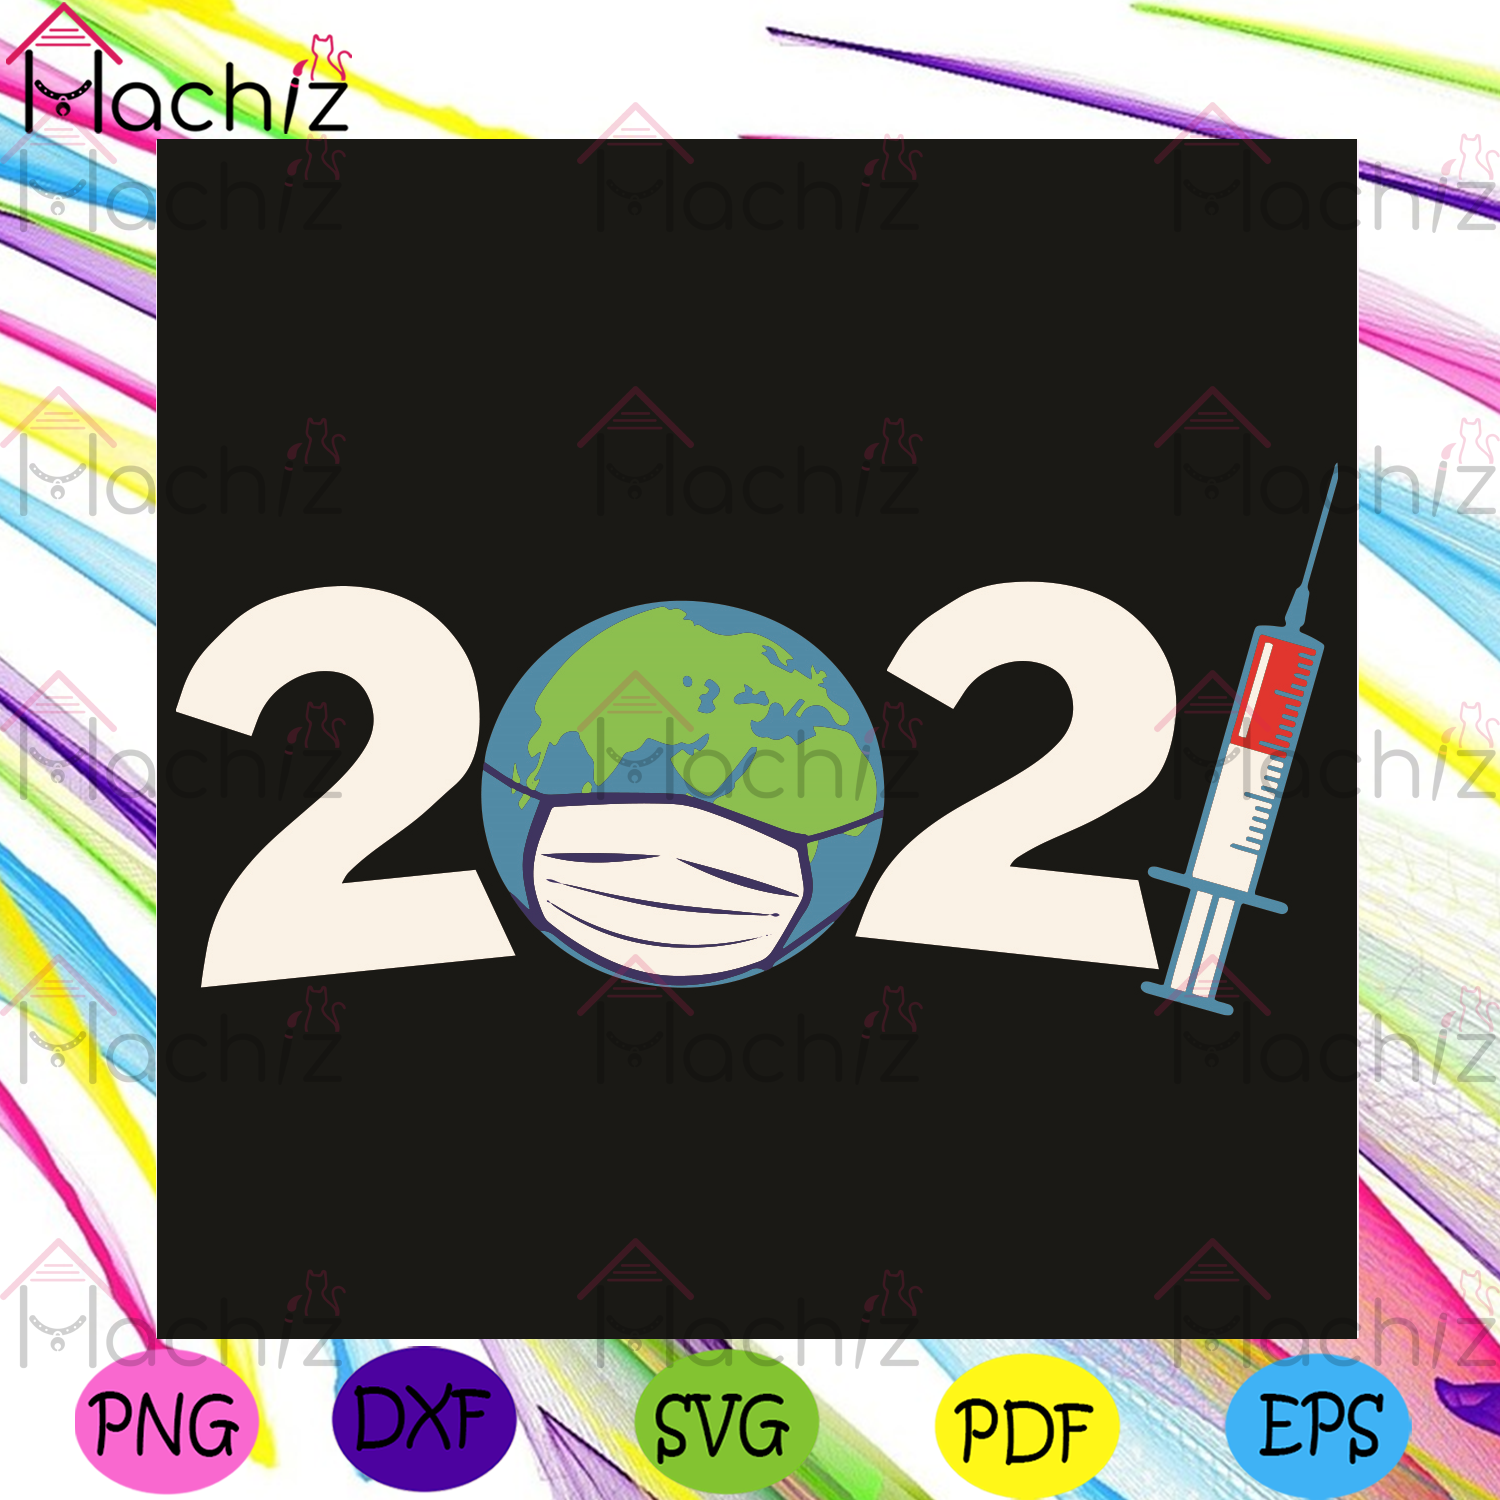 2021 Svg, Trending Svg, Happy New Year 2021 Svg, Face Mask Svg, Earth Svg, Syringe Svg, Healthy Life Svg, 2020 Svg, Rough Year Svg, Quarantine Svg, Coronavirus Svg, Health Svg, New Year Svg, Bye Bye 2020 Svg, Strong Earth Svg